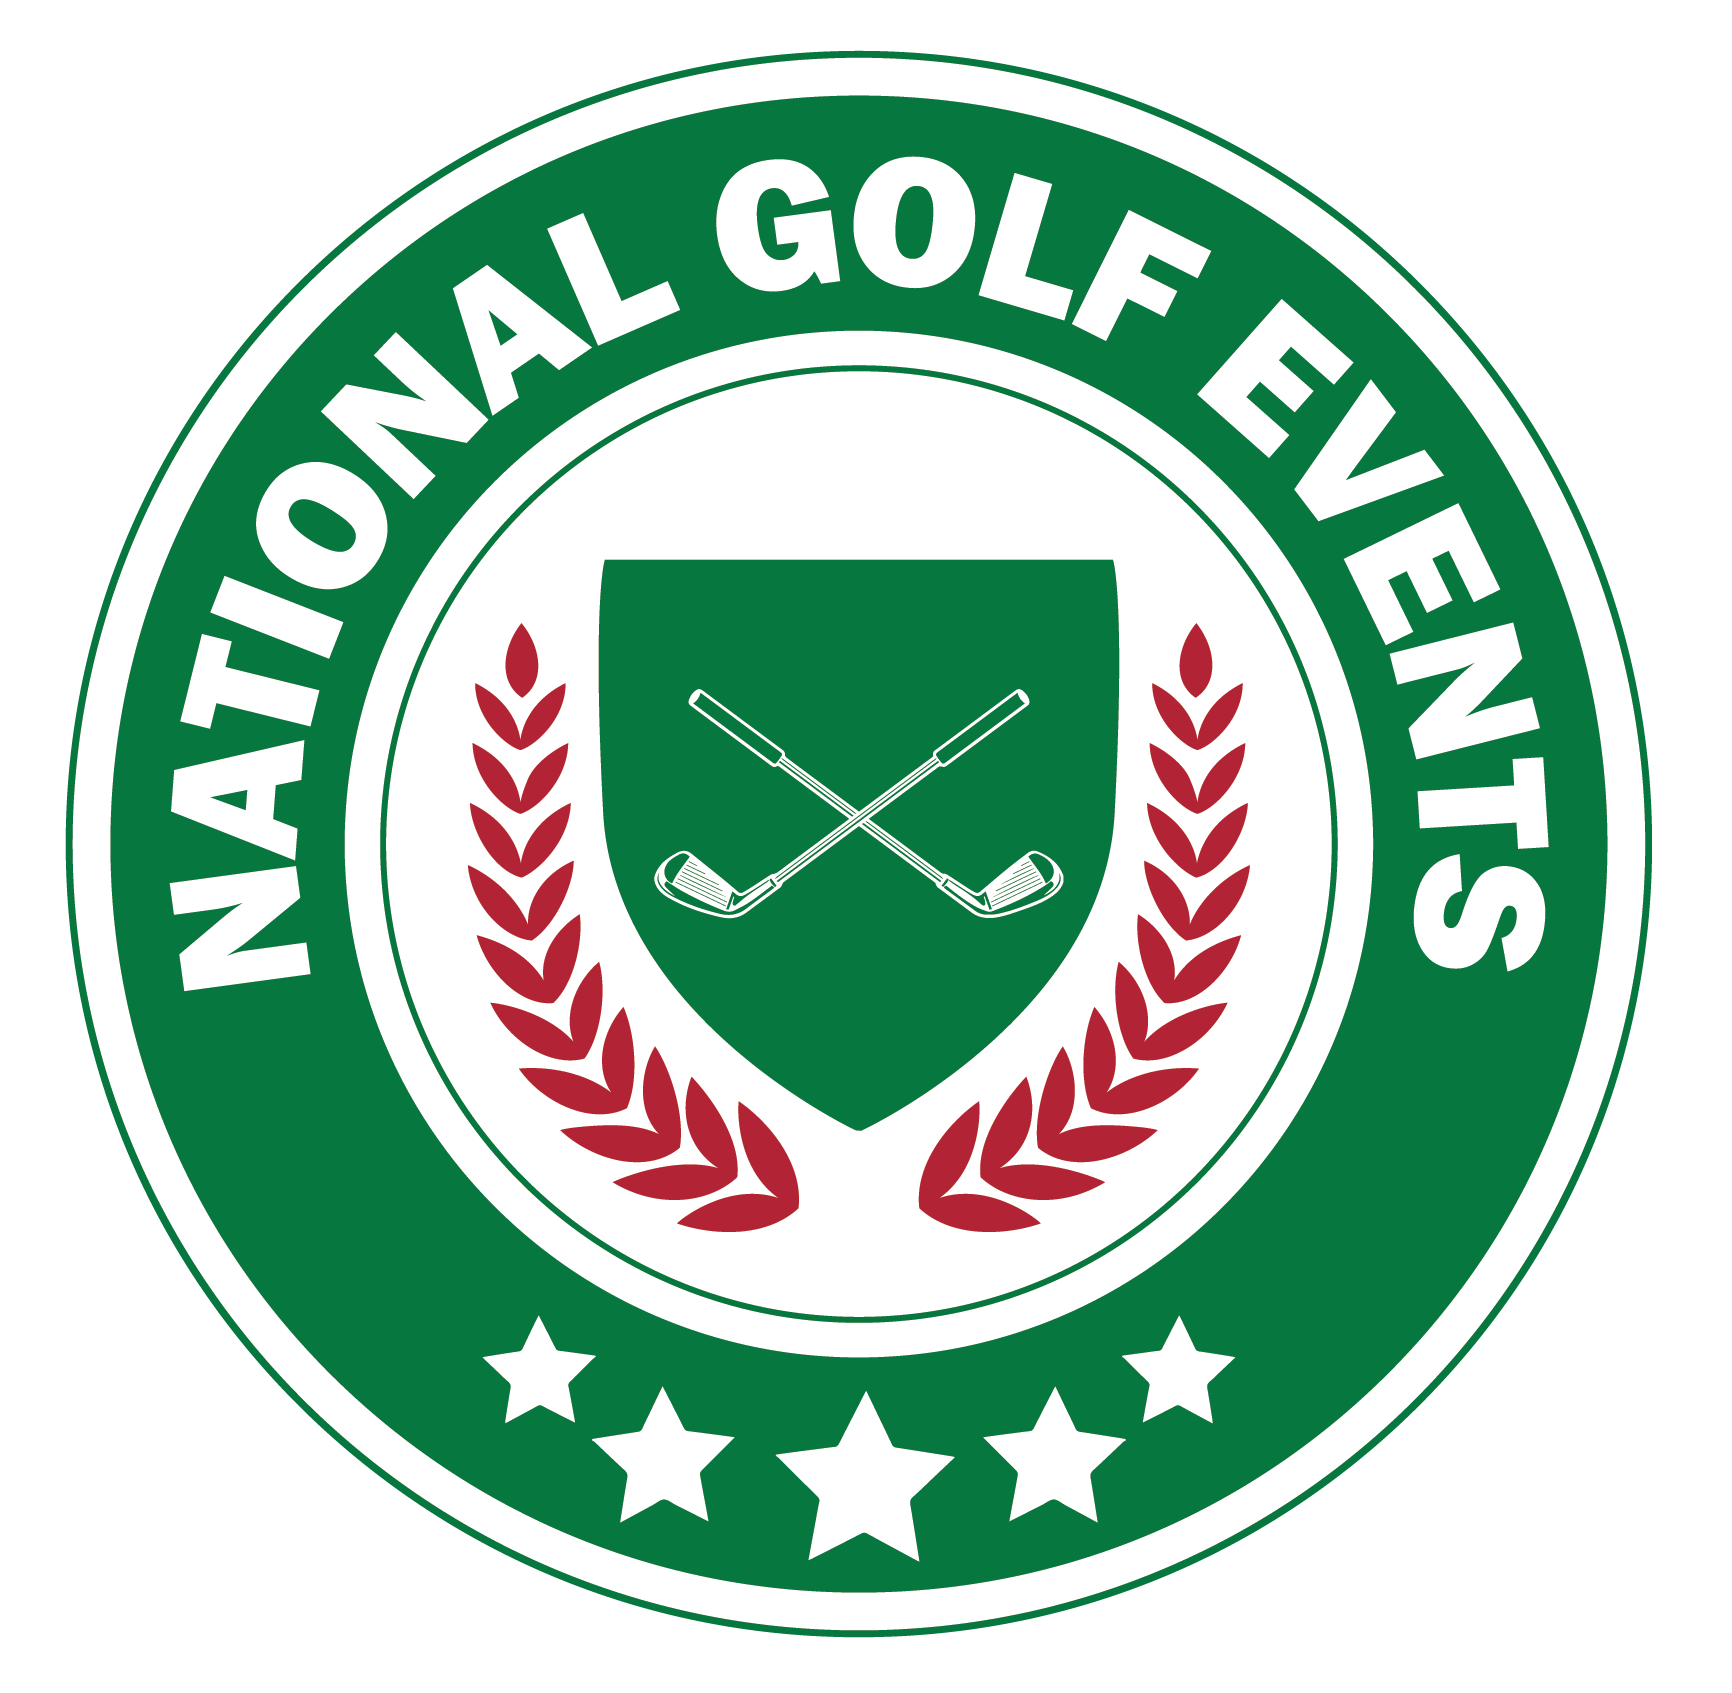 NATIONAL GOLF EVENTS